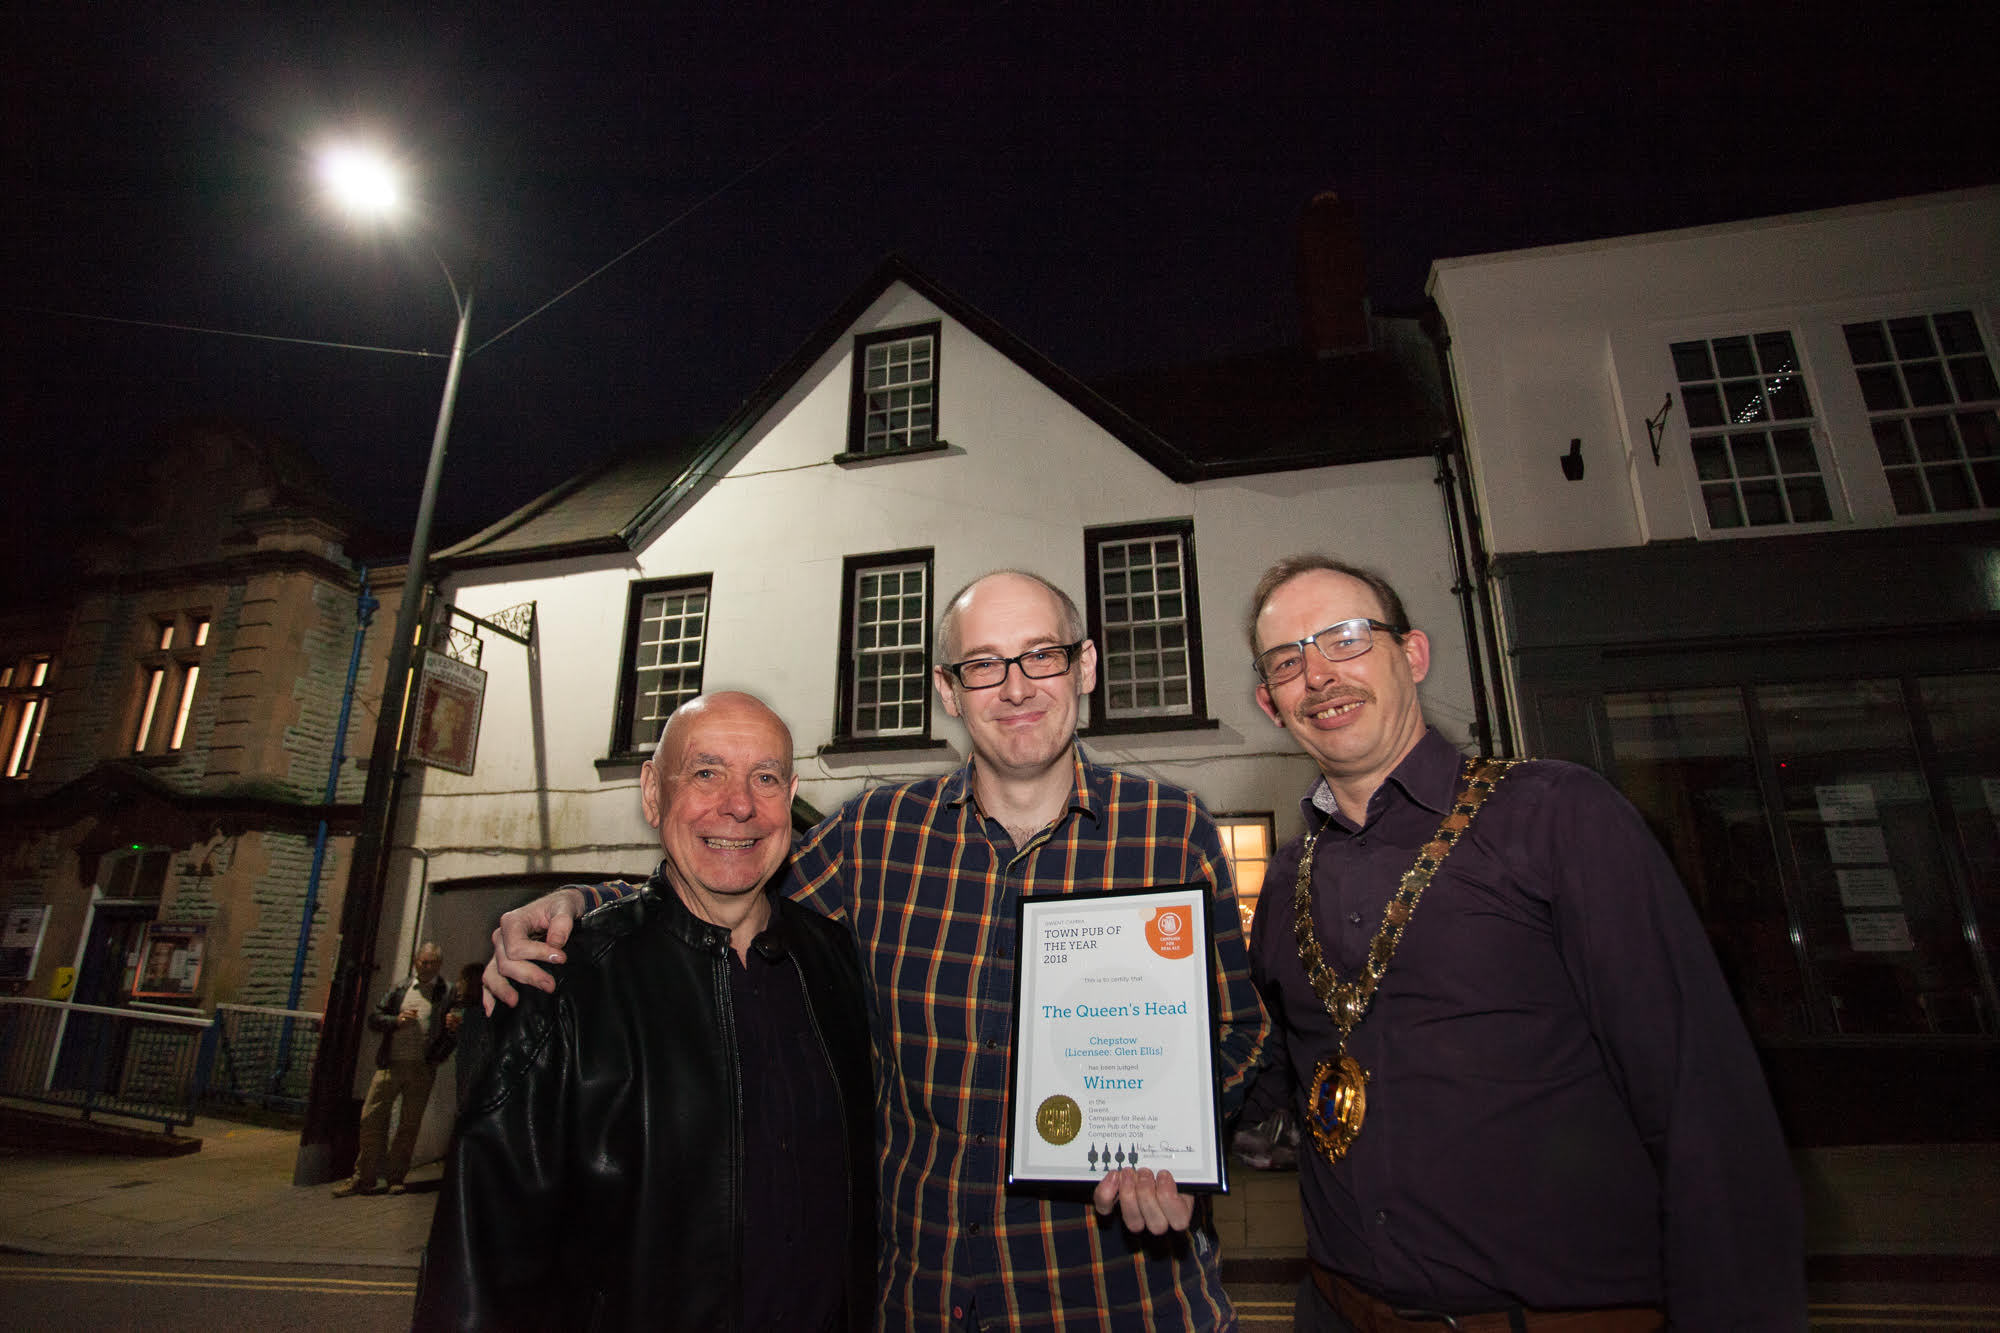 l-r) Martyn Groucutt (Gwent Camra Chairman), Me (Glen Ellis, Queens Head Landlord) and Dale Rooke (Chepstow Town Mayor)